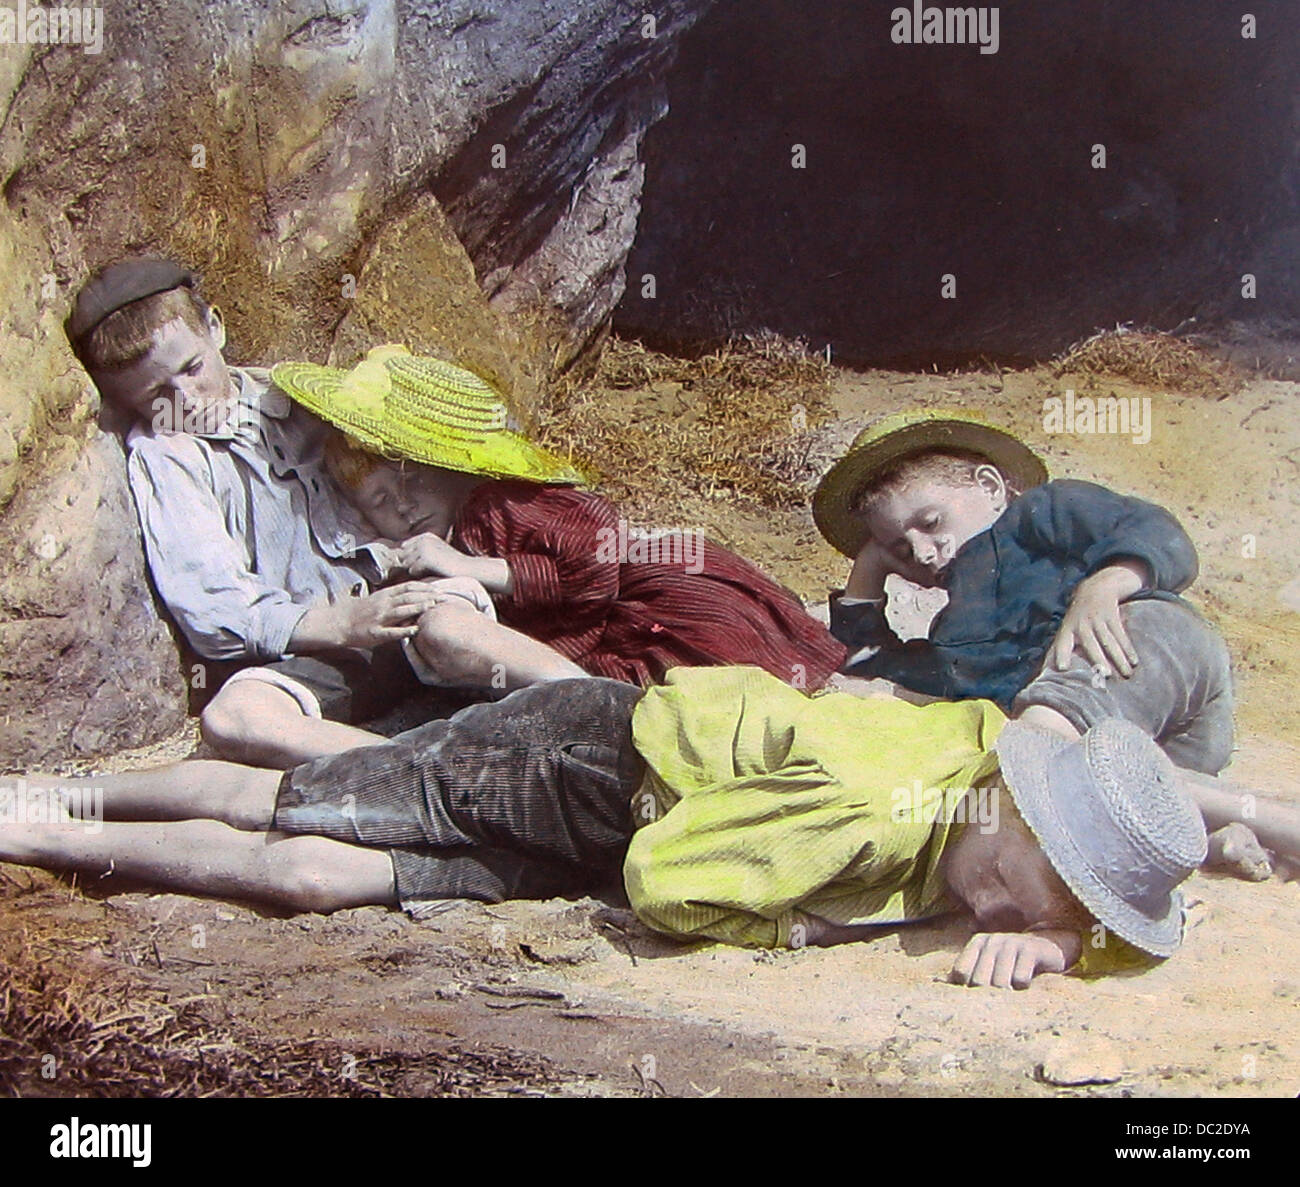 Children asleep on the beach Victorian period - Stock Image